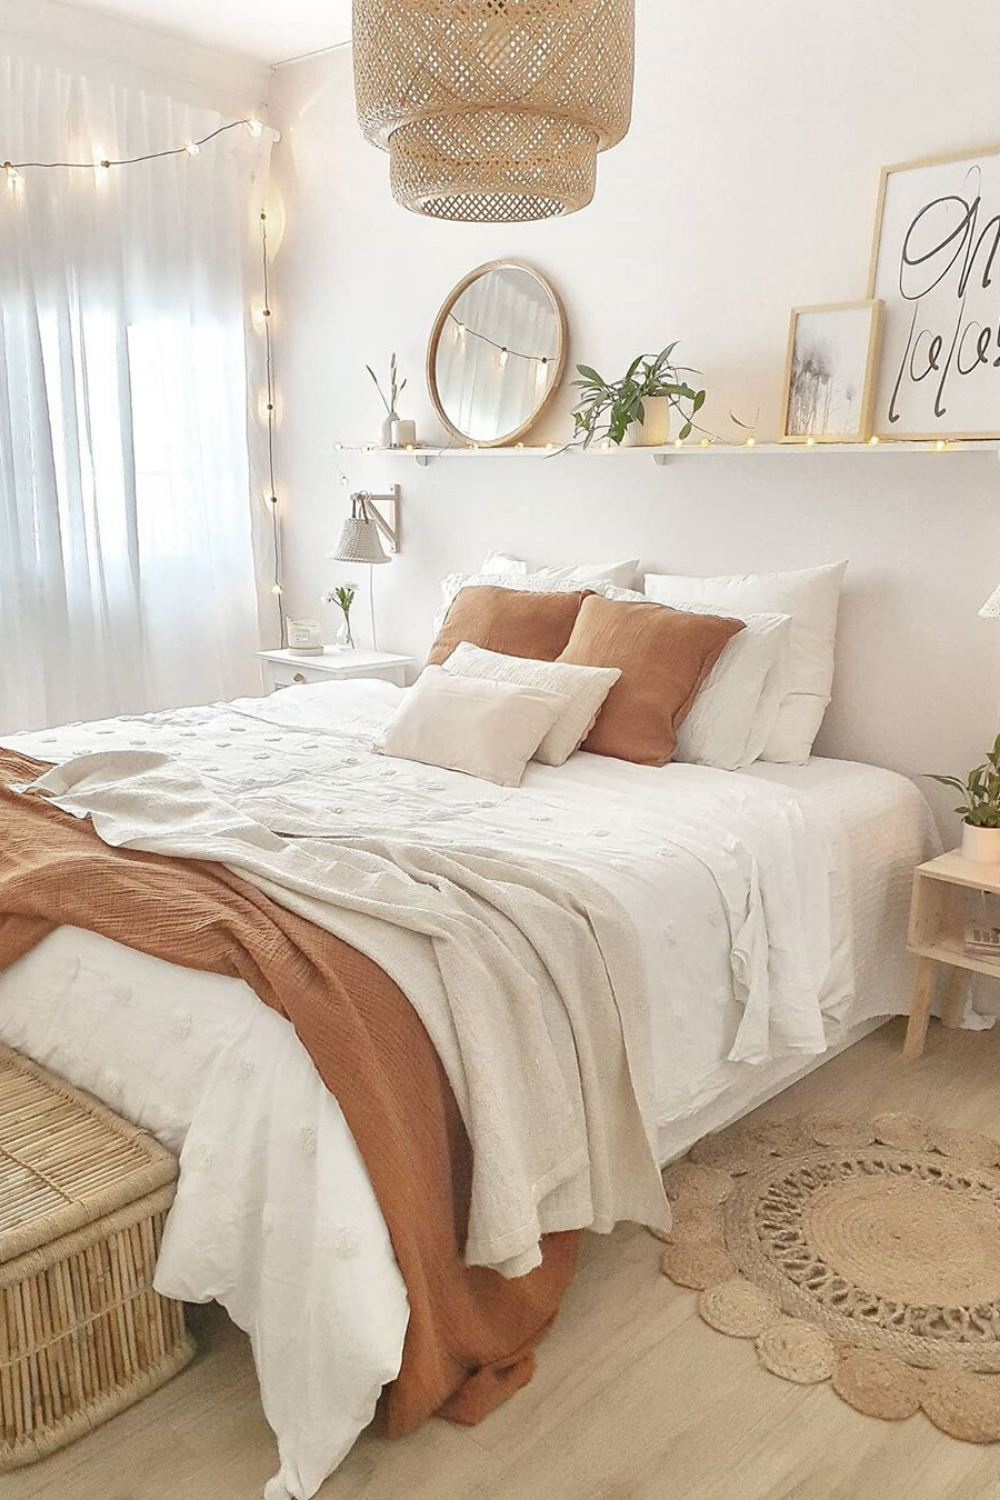 Home Discover 25 Most Instagrammable Bedroom Ideas Redecorate Dorm Room Decor Cozy